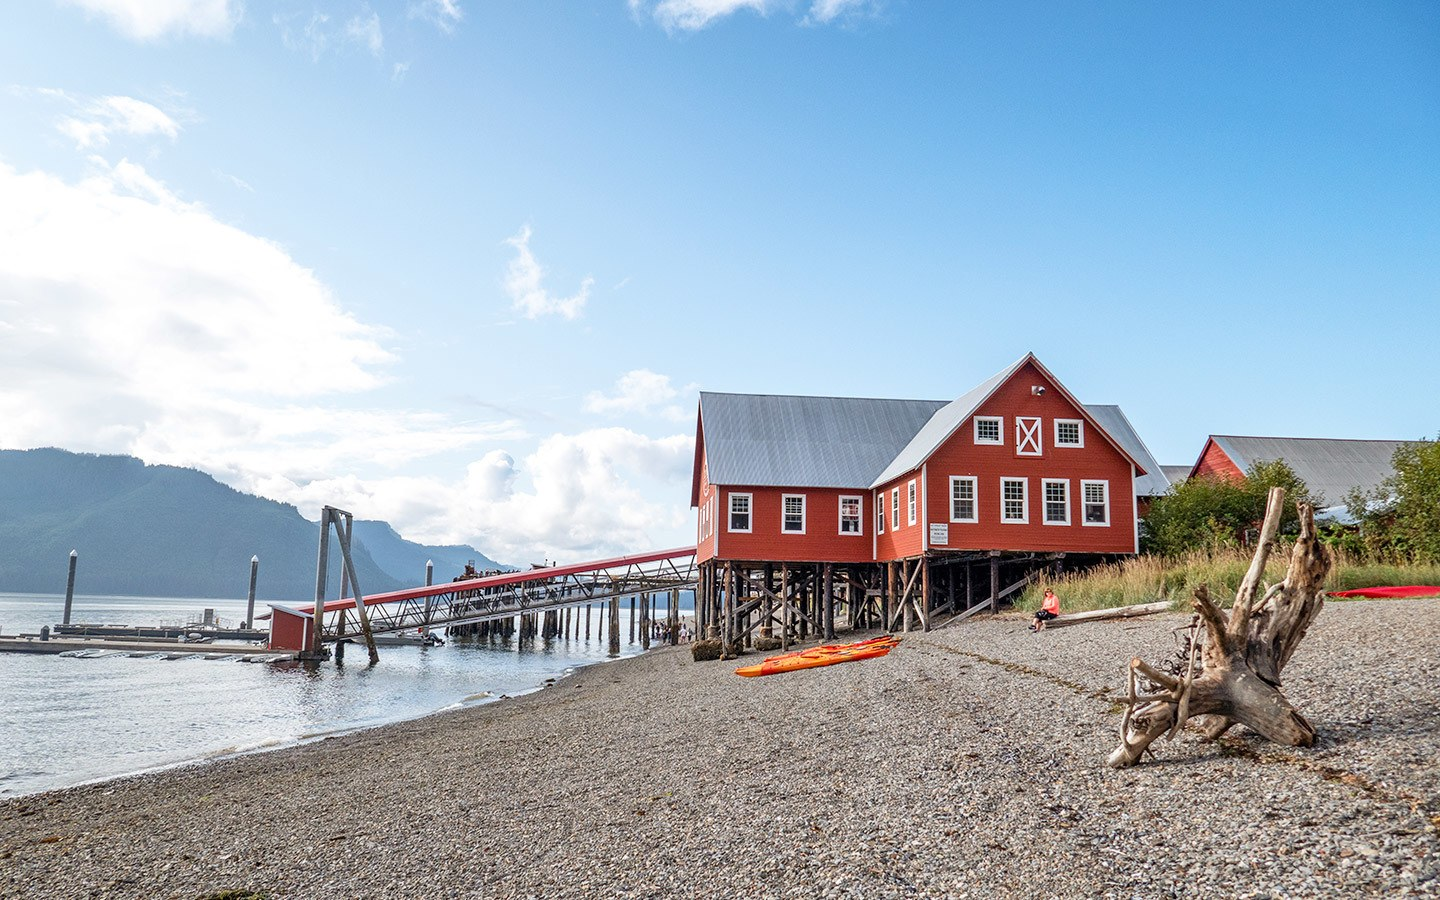 The 1930s salmon cannery at Icy Strait Point in Alaska